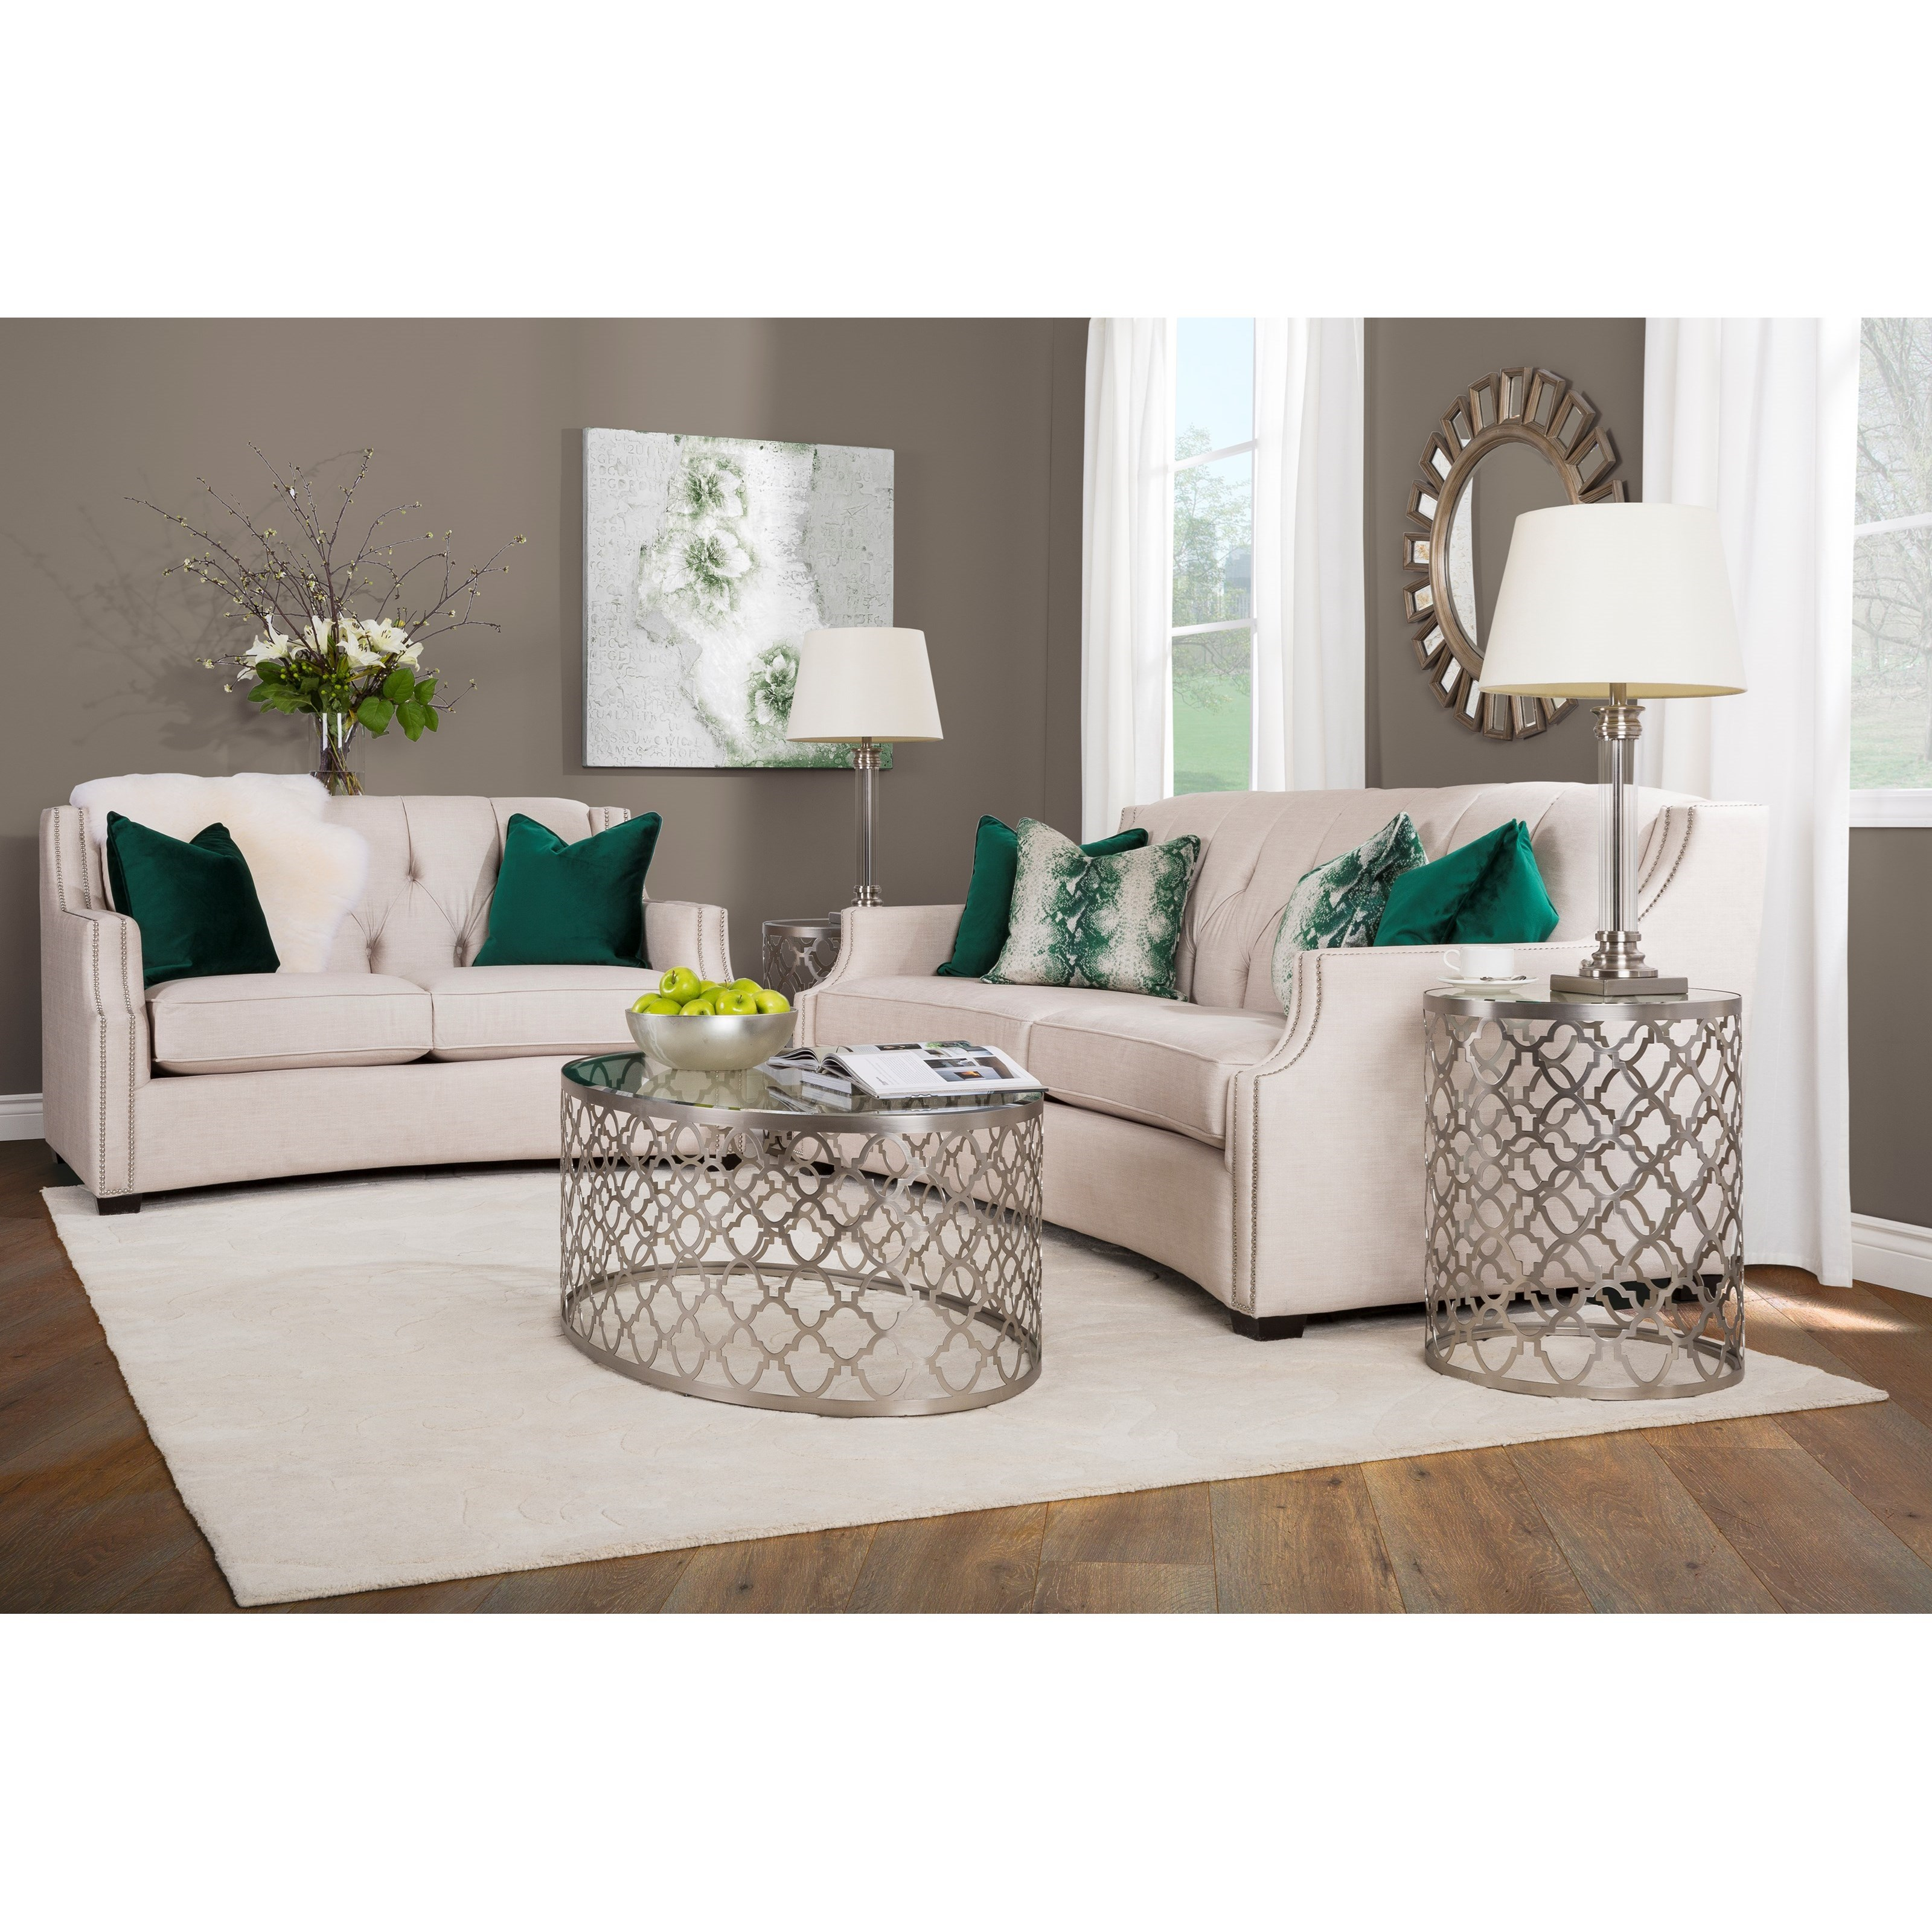 2789 Living Room Group by Decor-Rest at Rooms for Less